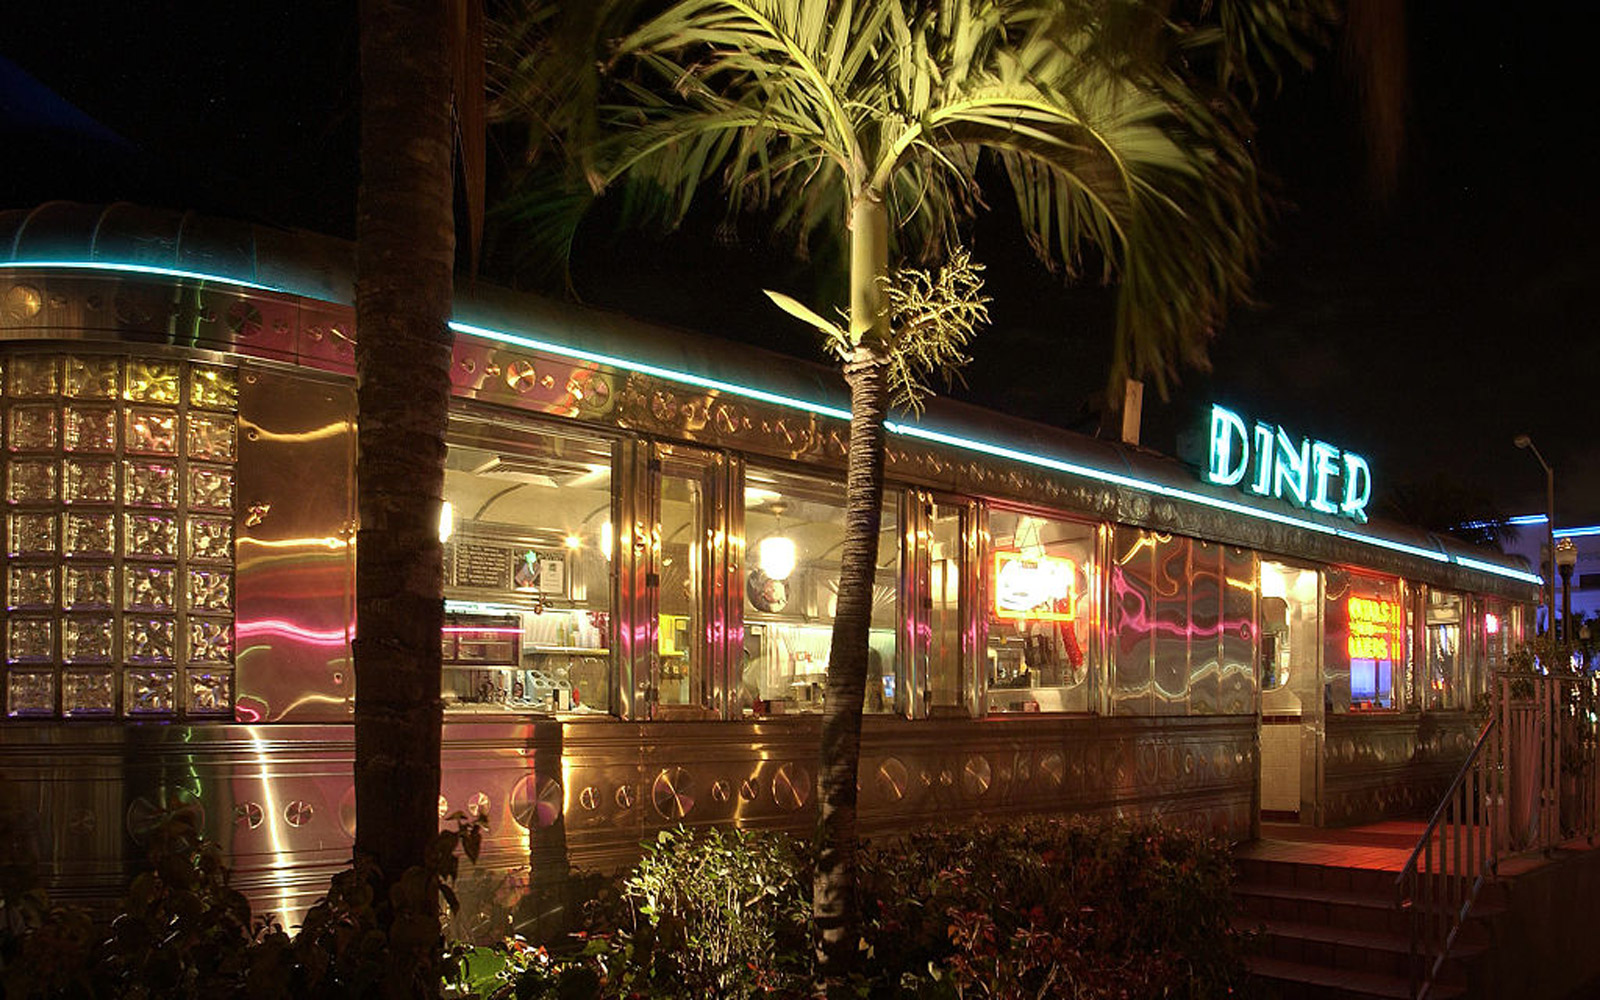 11th Street Diner, Miami Beach, FL